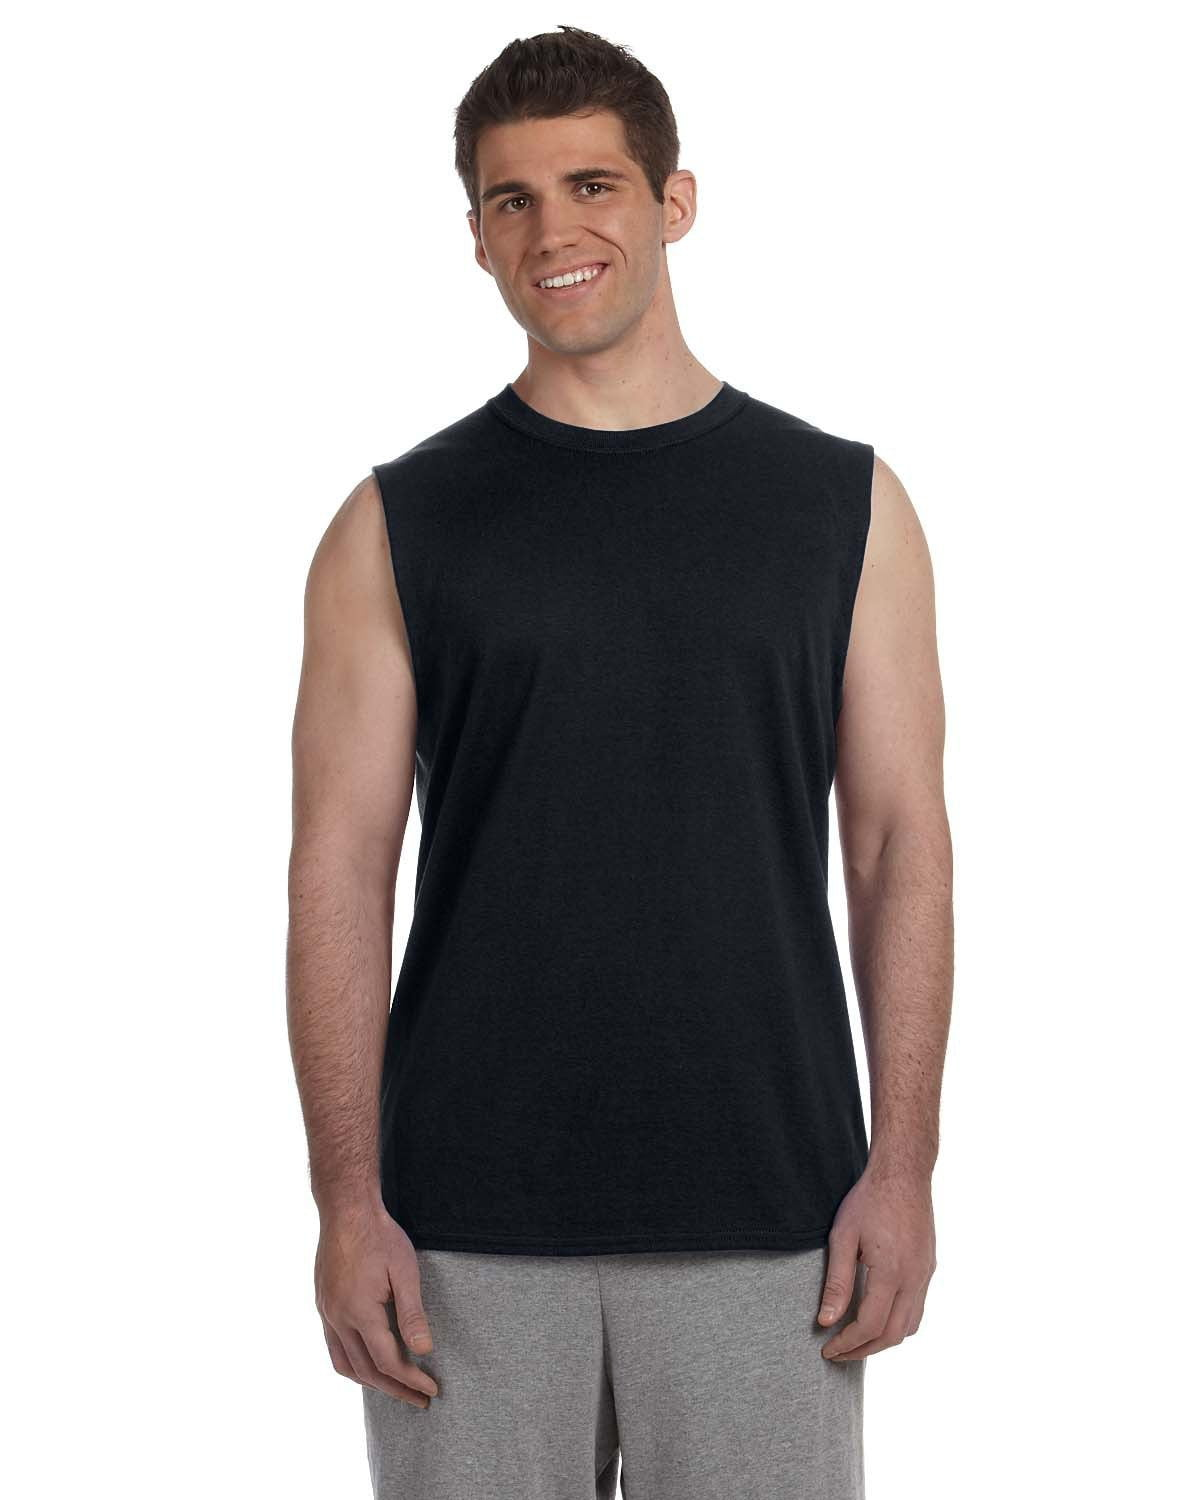 g270-adult-ultra-cotton-6-oz-sleeveless-t-shirt-Small-BLACK-Oasispromos